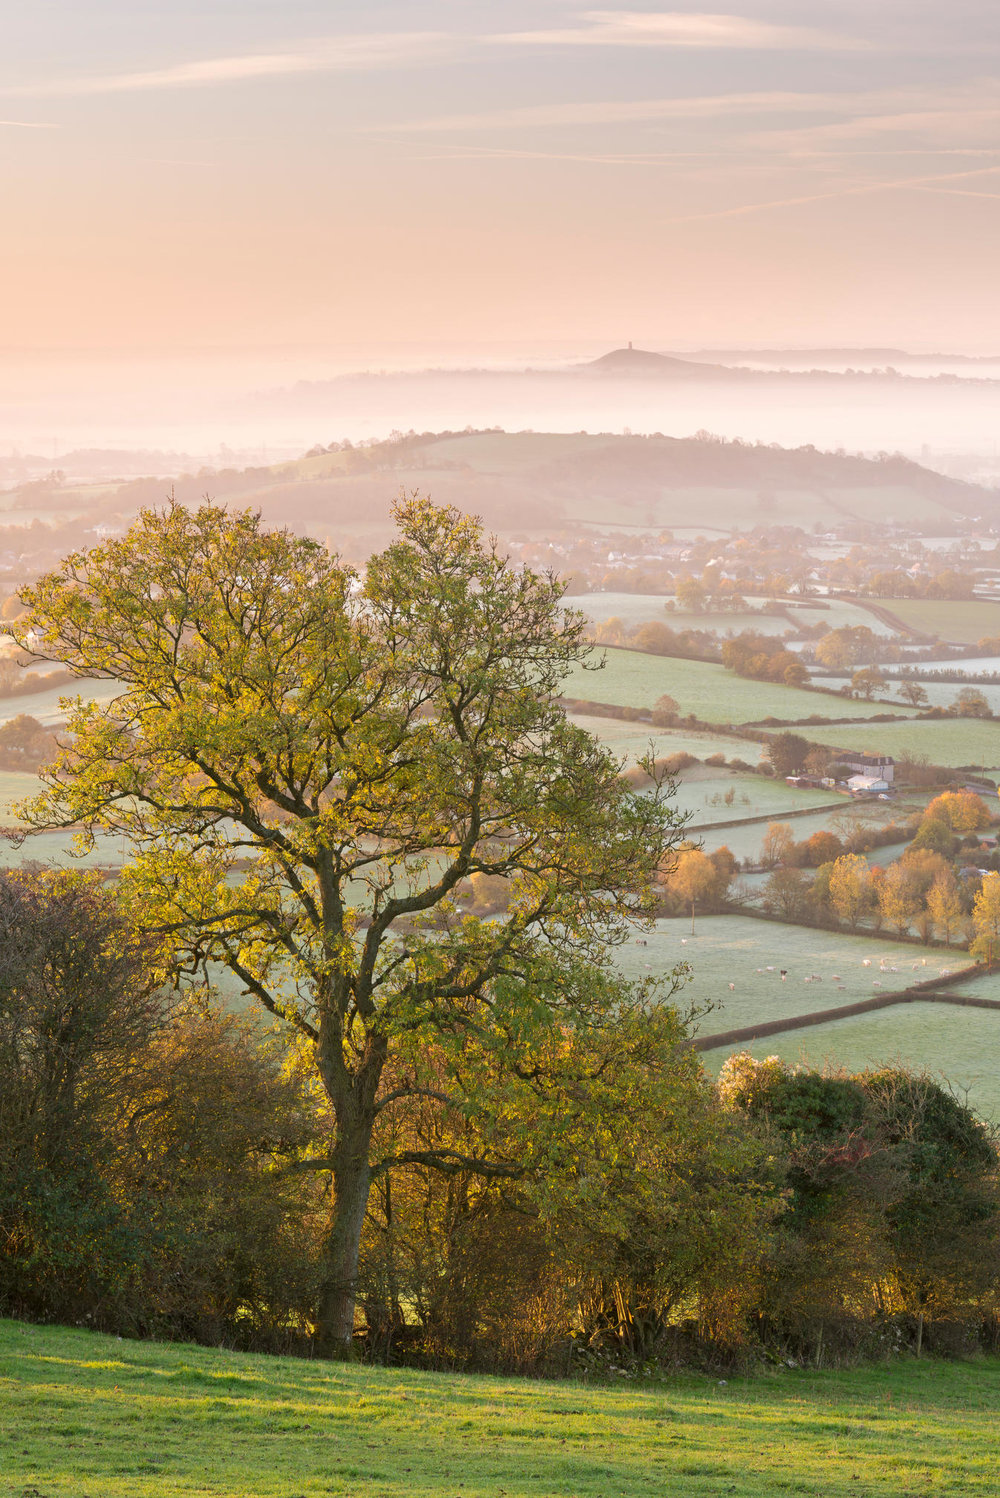 The misty morning view of Glastonbury with the legendary Tor in the distance.